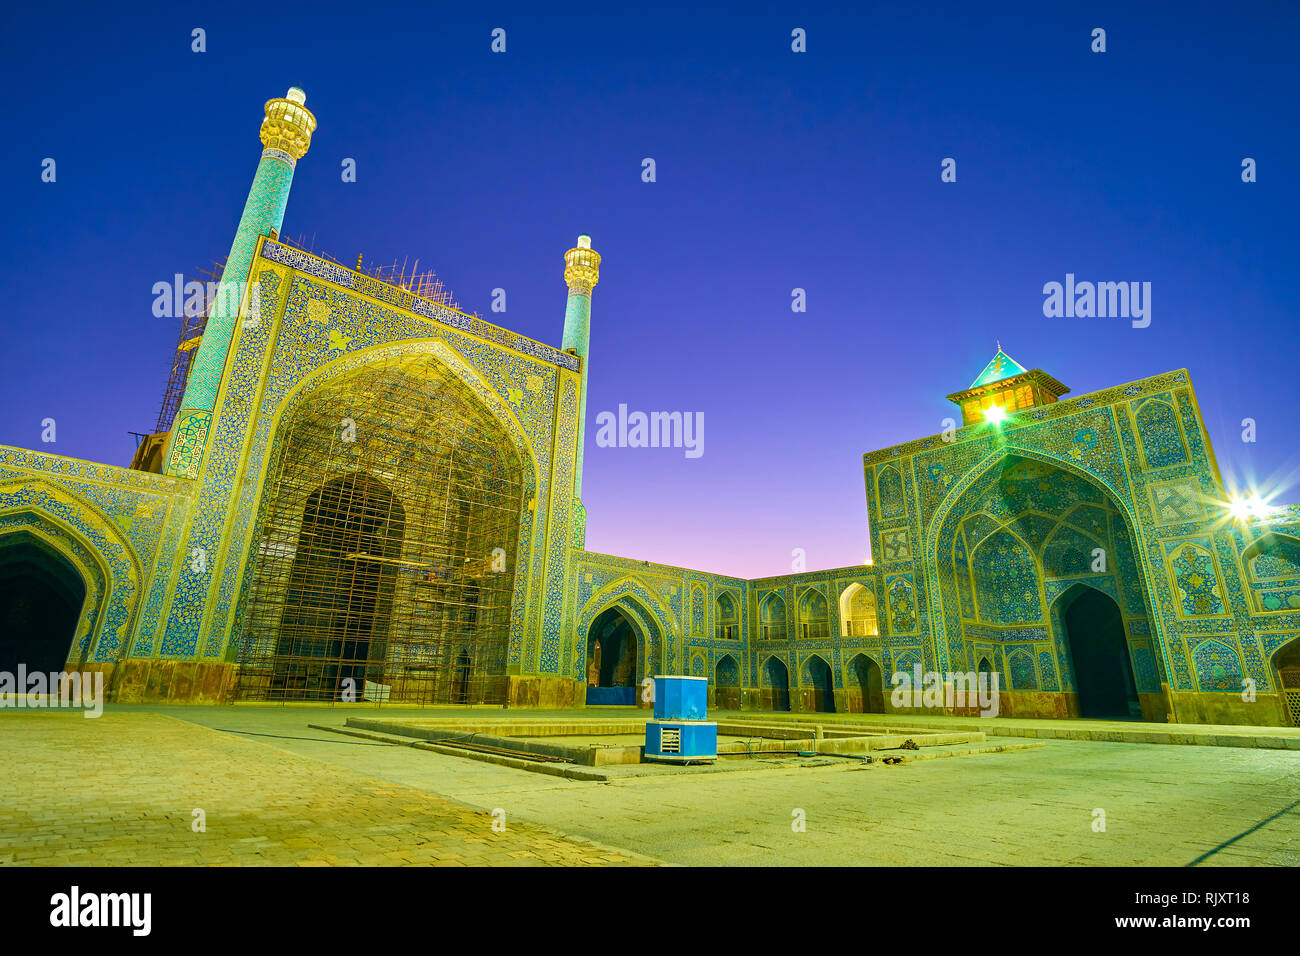 The tile decorated portals of Shah Mosque with authentic persian double minaret and a small goldast on the top of the right iwan, Isfahan, Iran - Stock Image